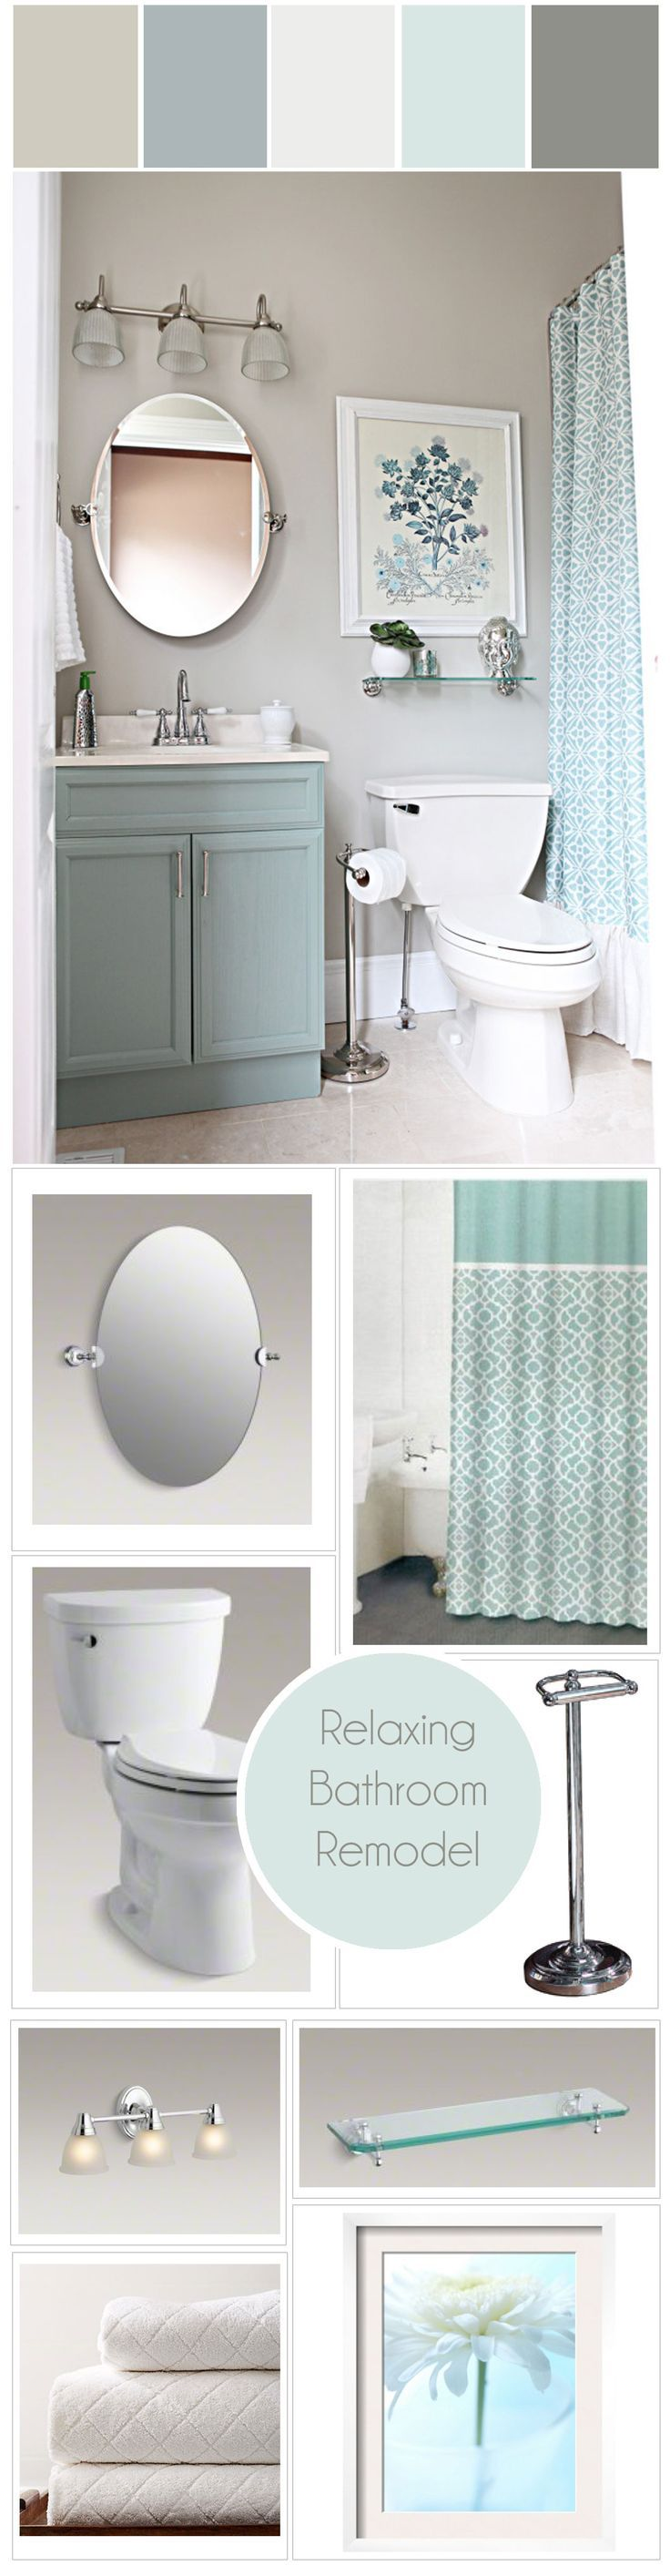 Basement Bathroom Ideas On Budget Low Ceiling And For Small Space Check It Out Ba Os